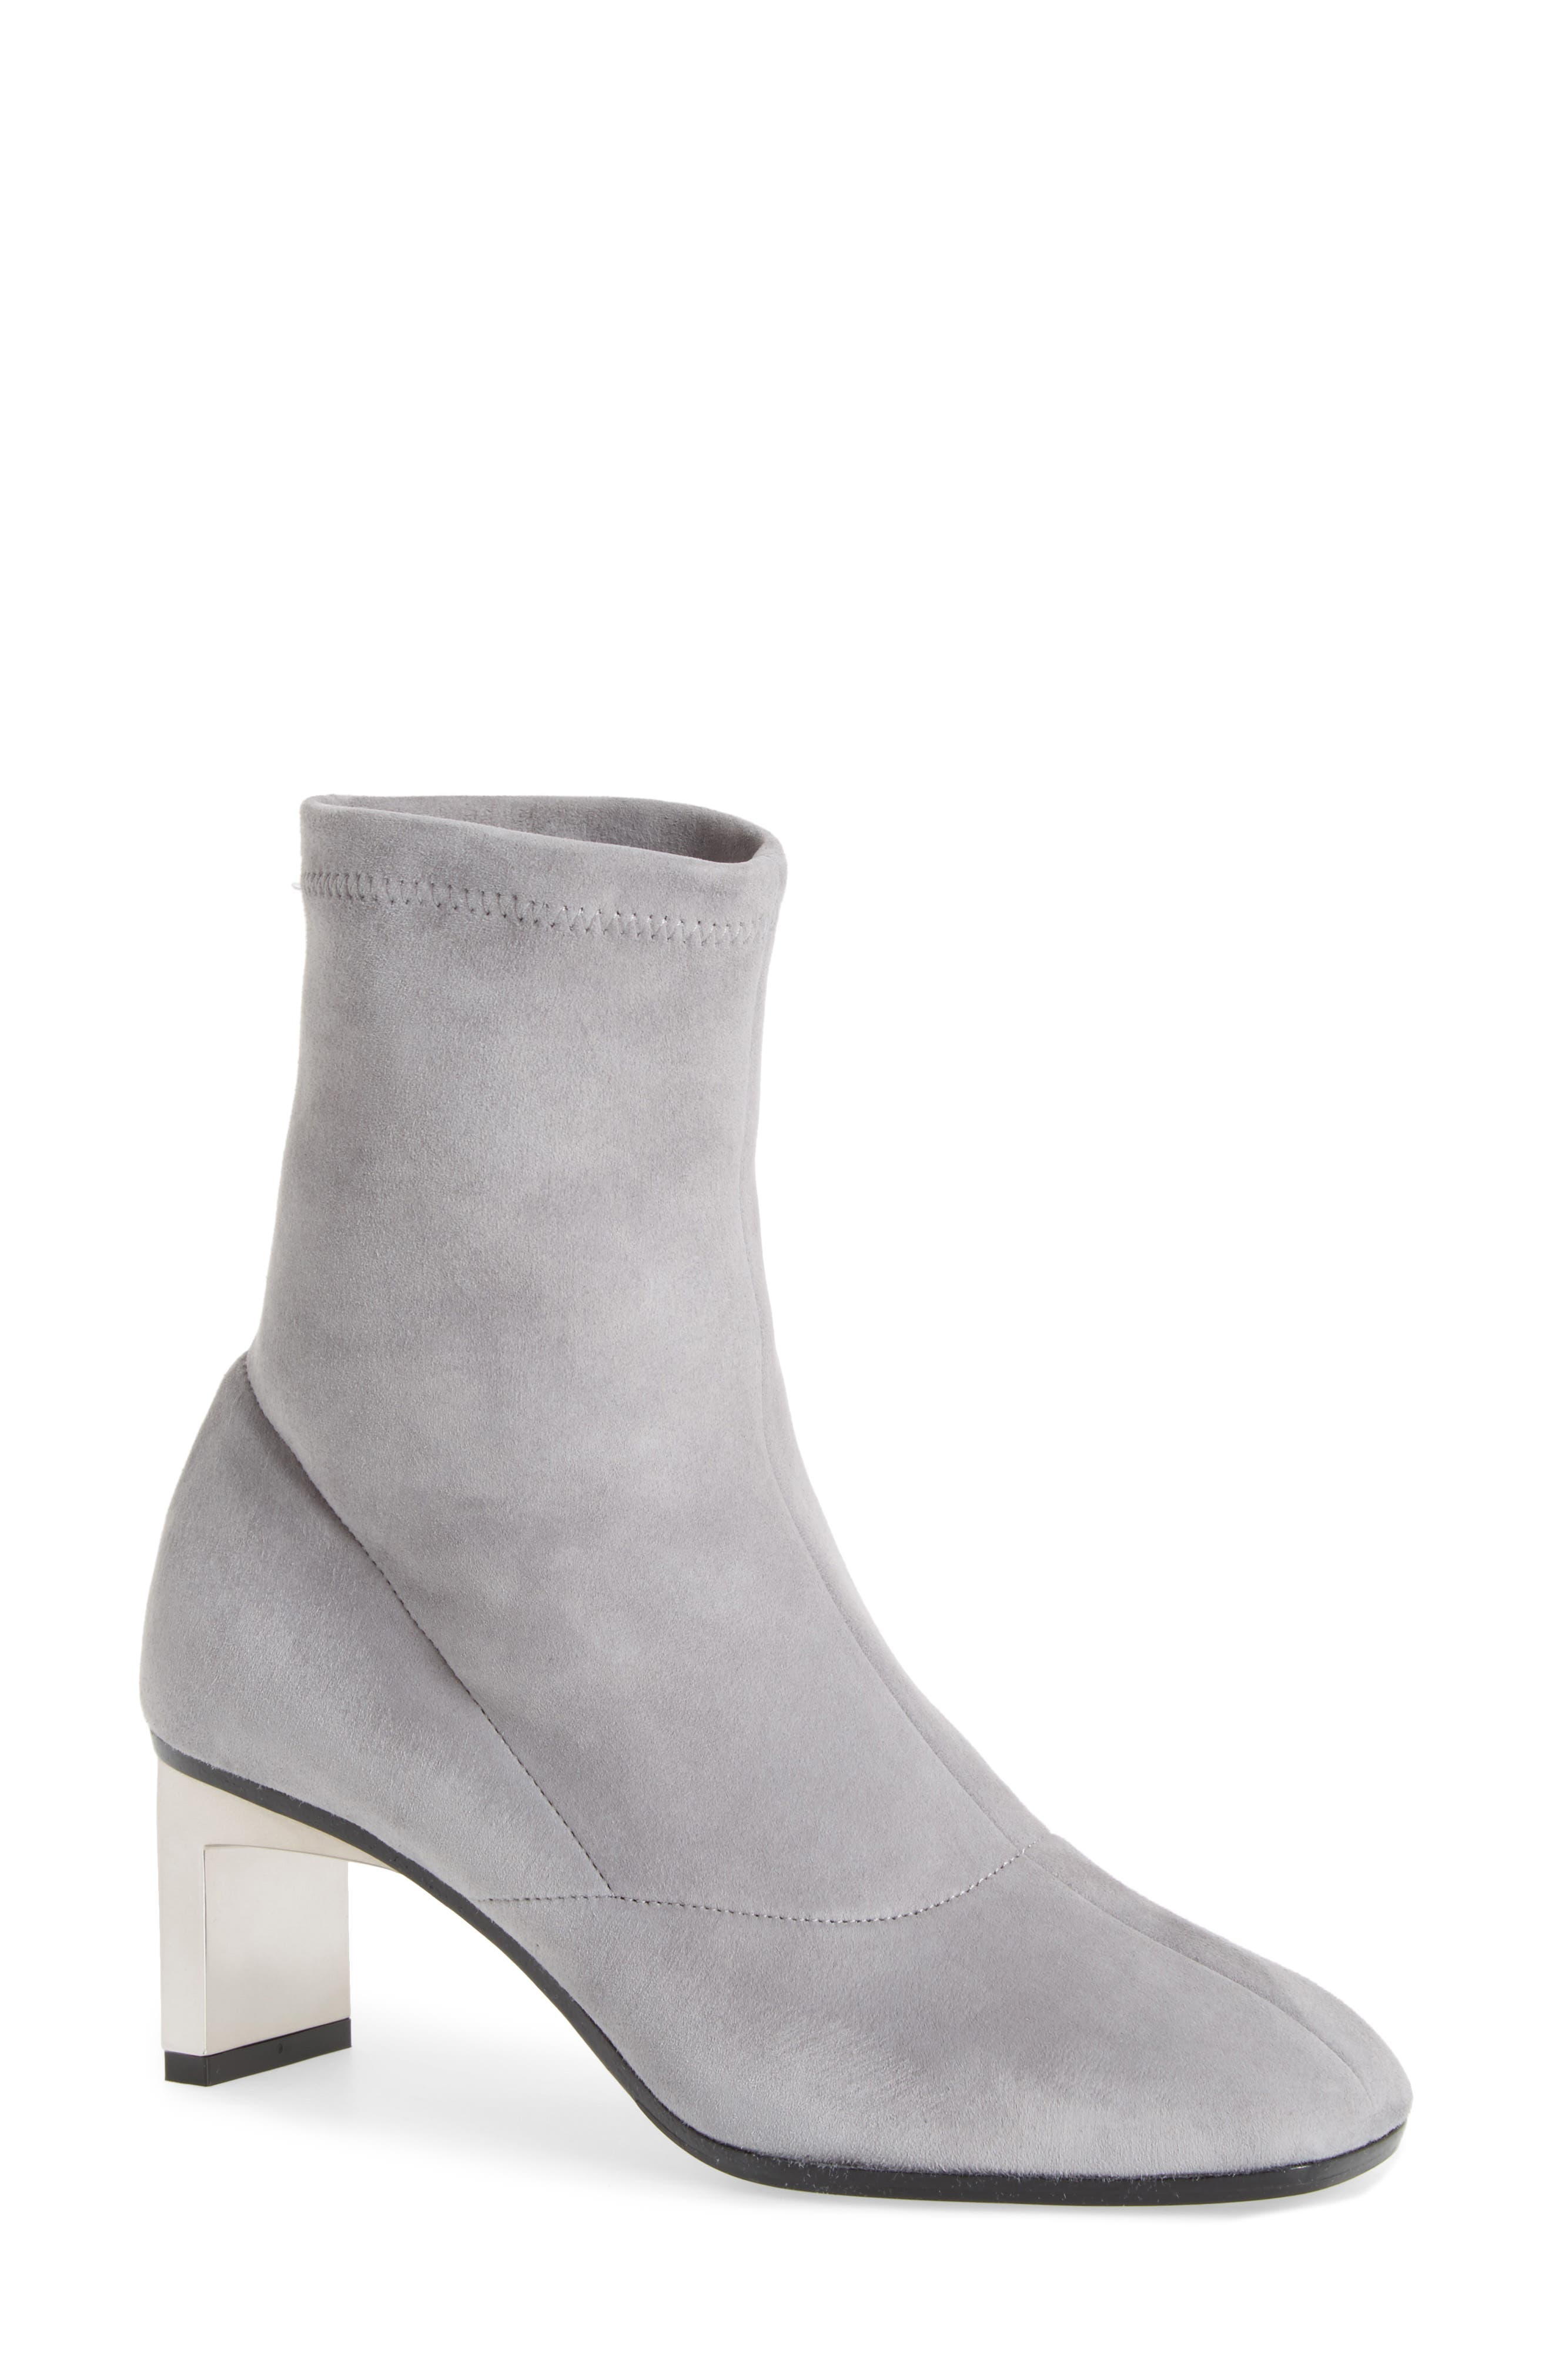 Alternate Image 1 Selected - 3.1 Phillip Lim Blade Boot (Women)